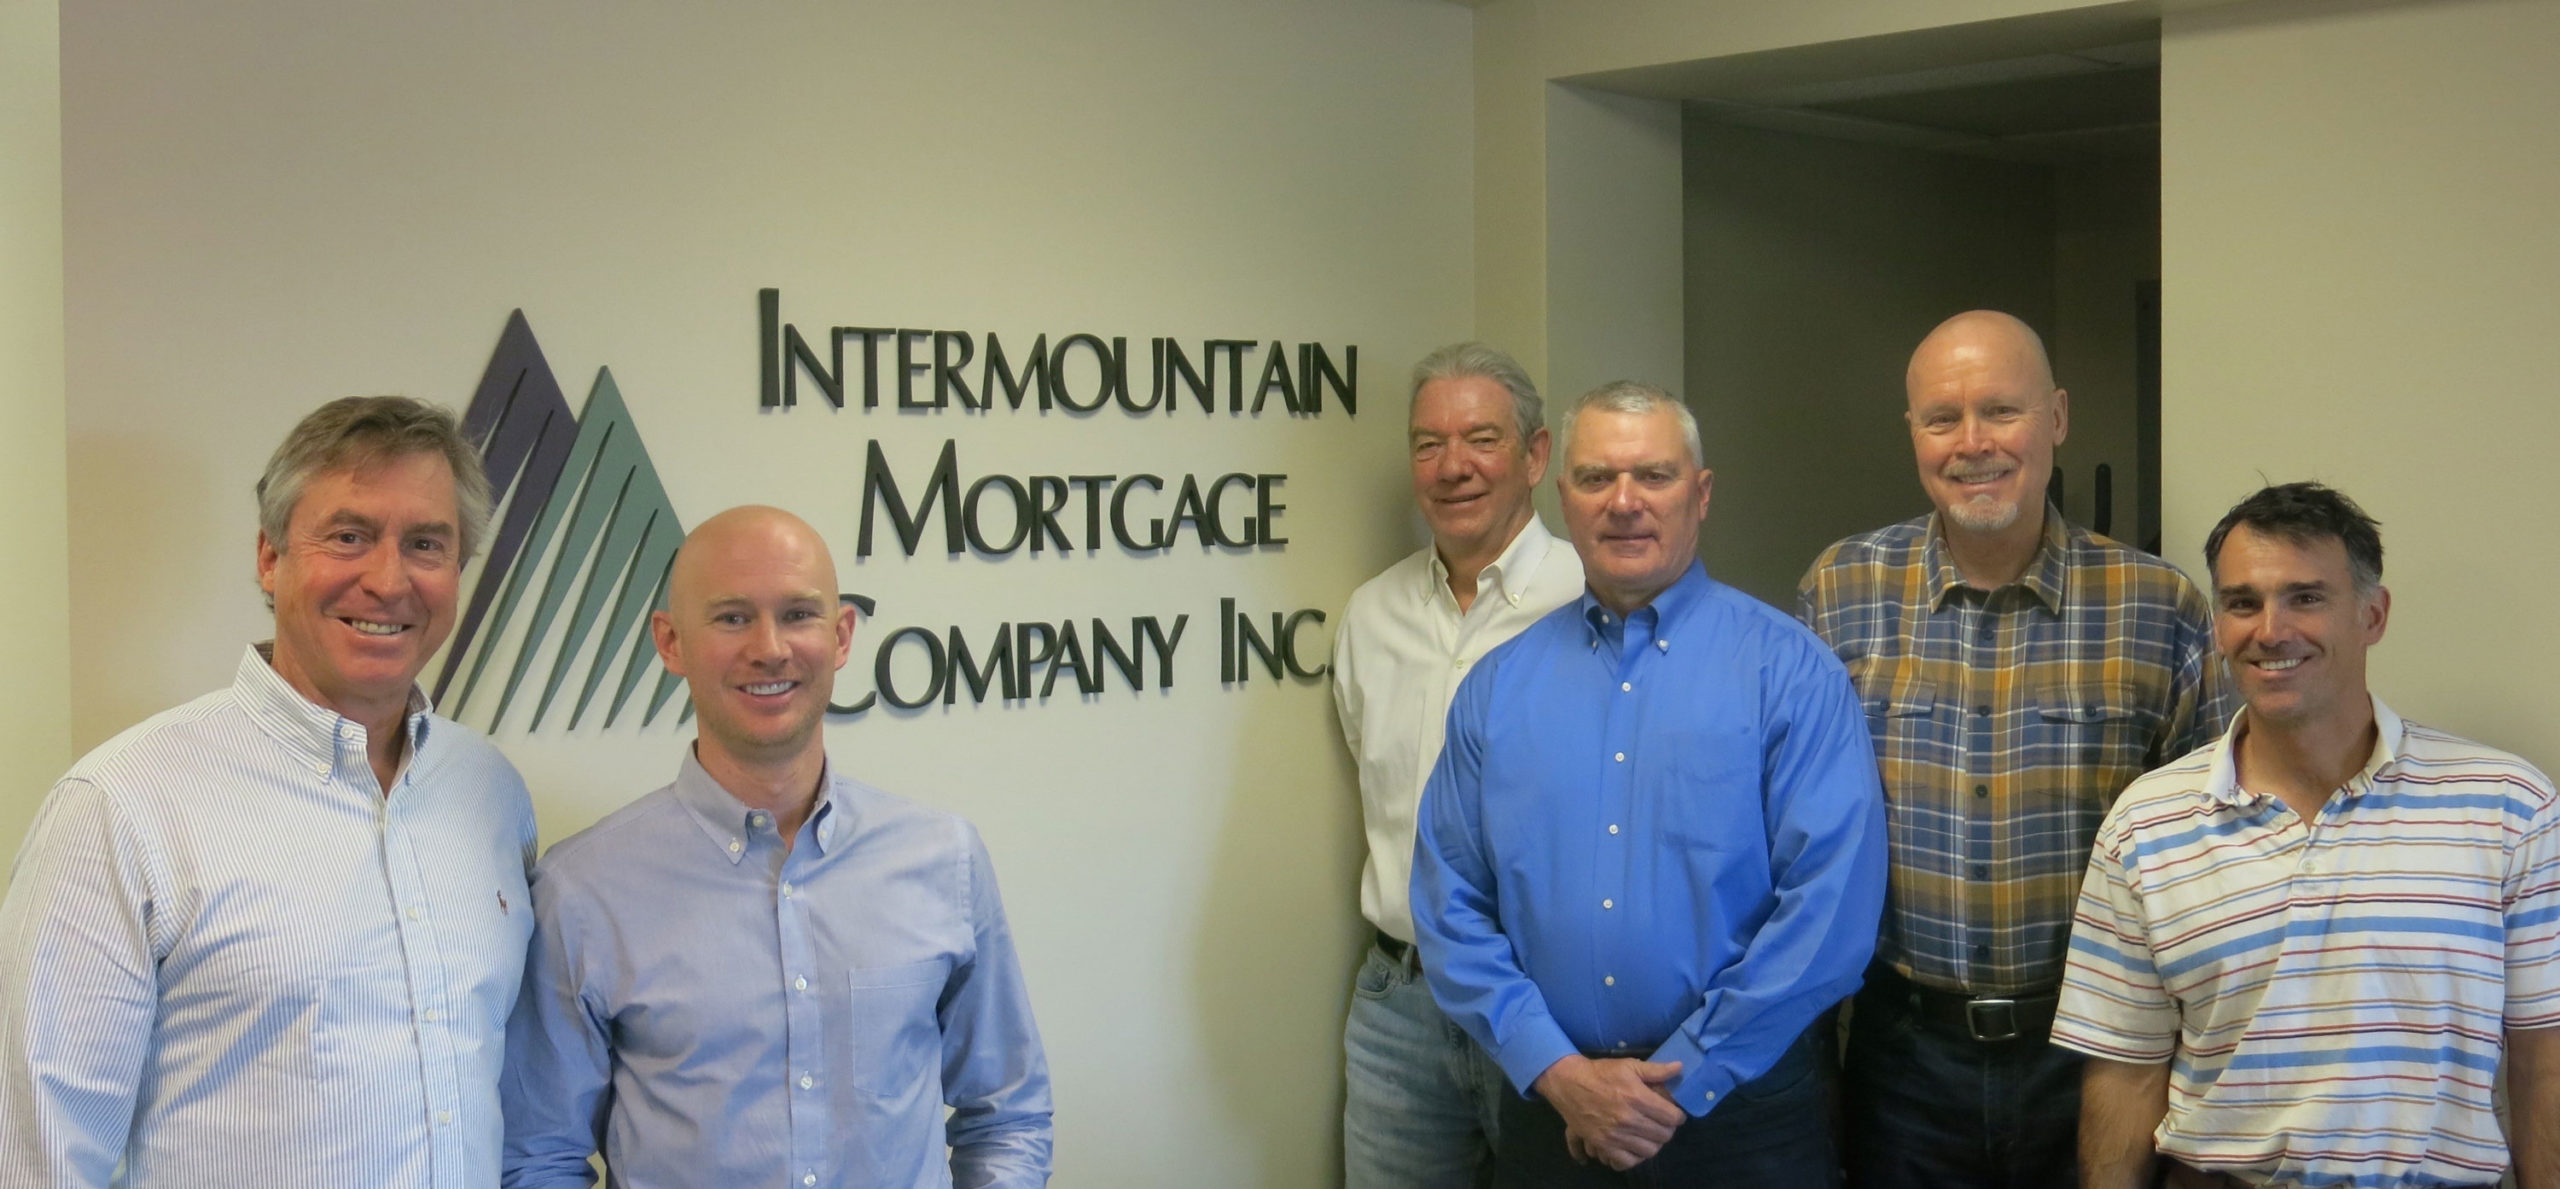 Intermountain Mortgage Company